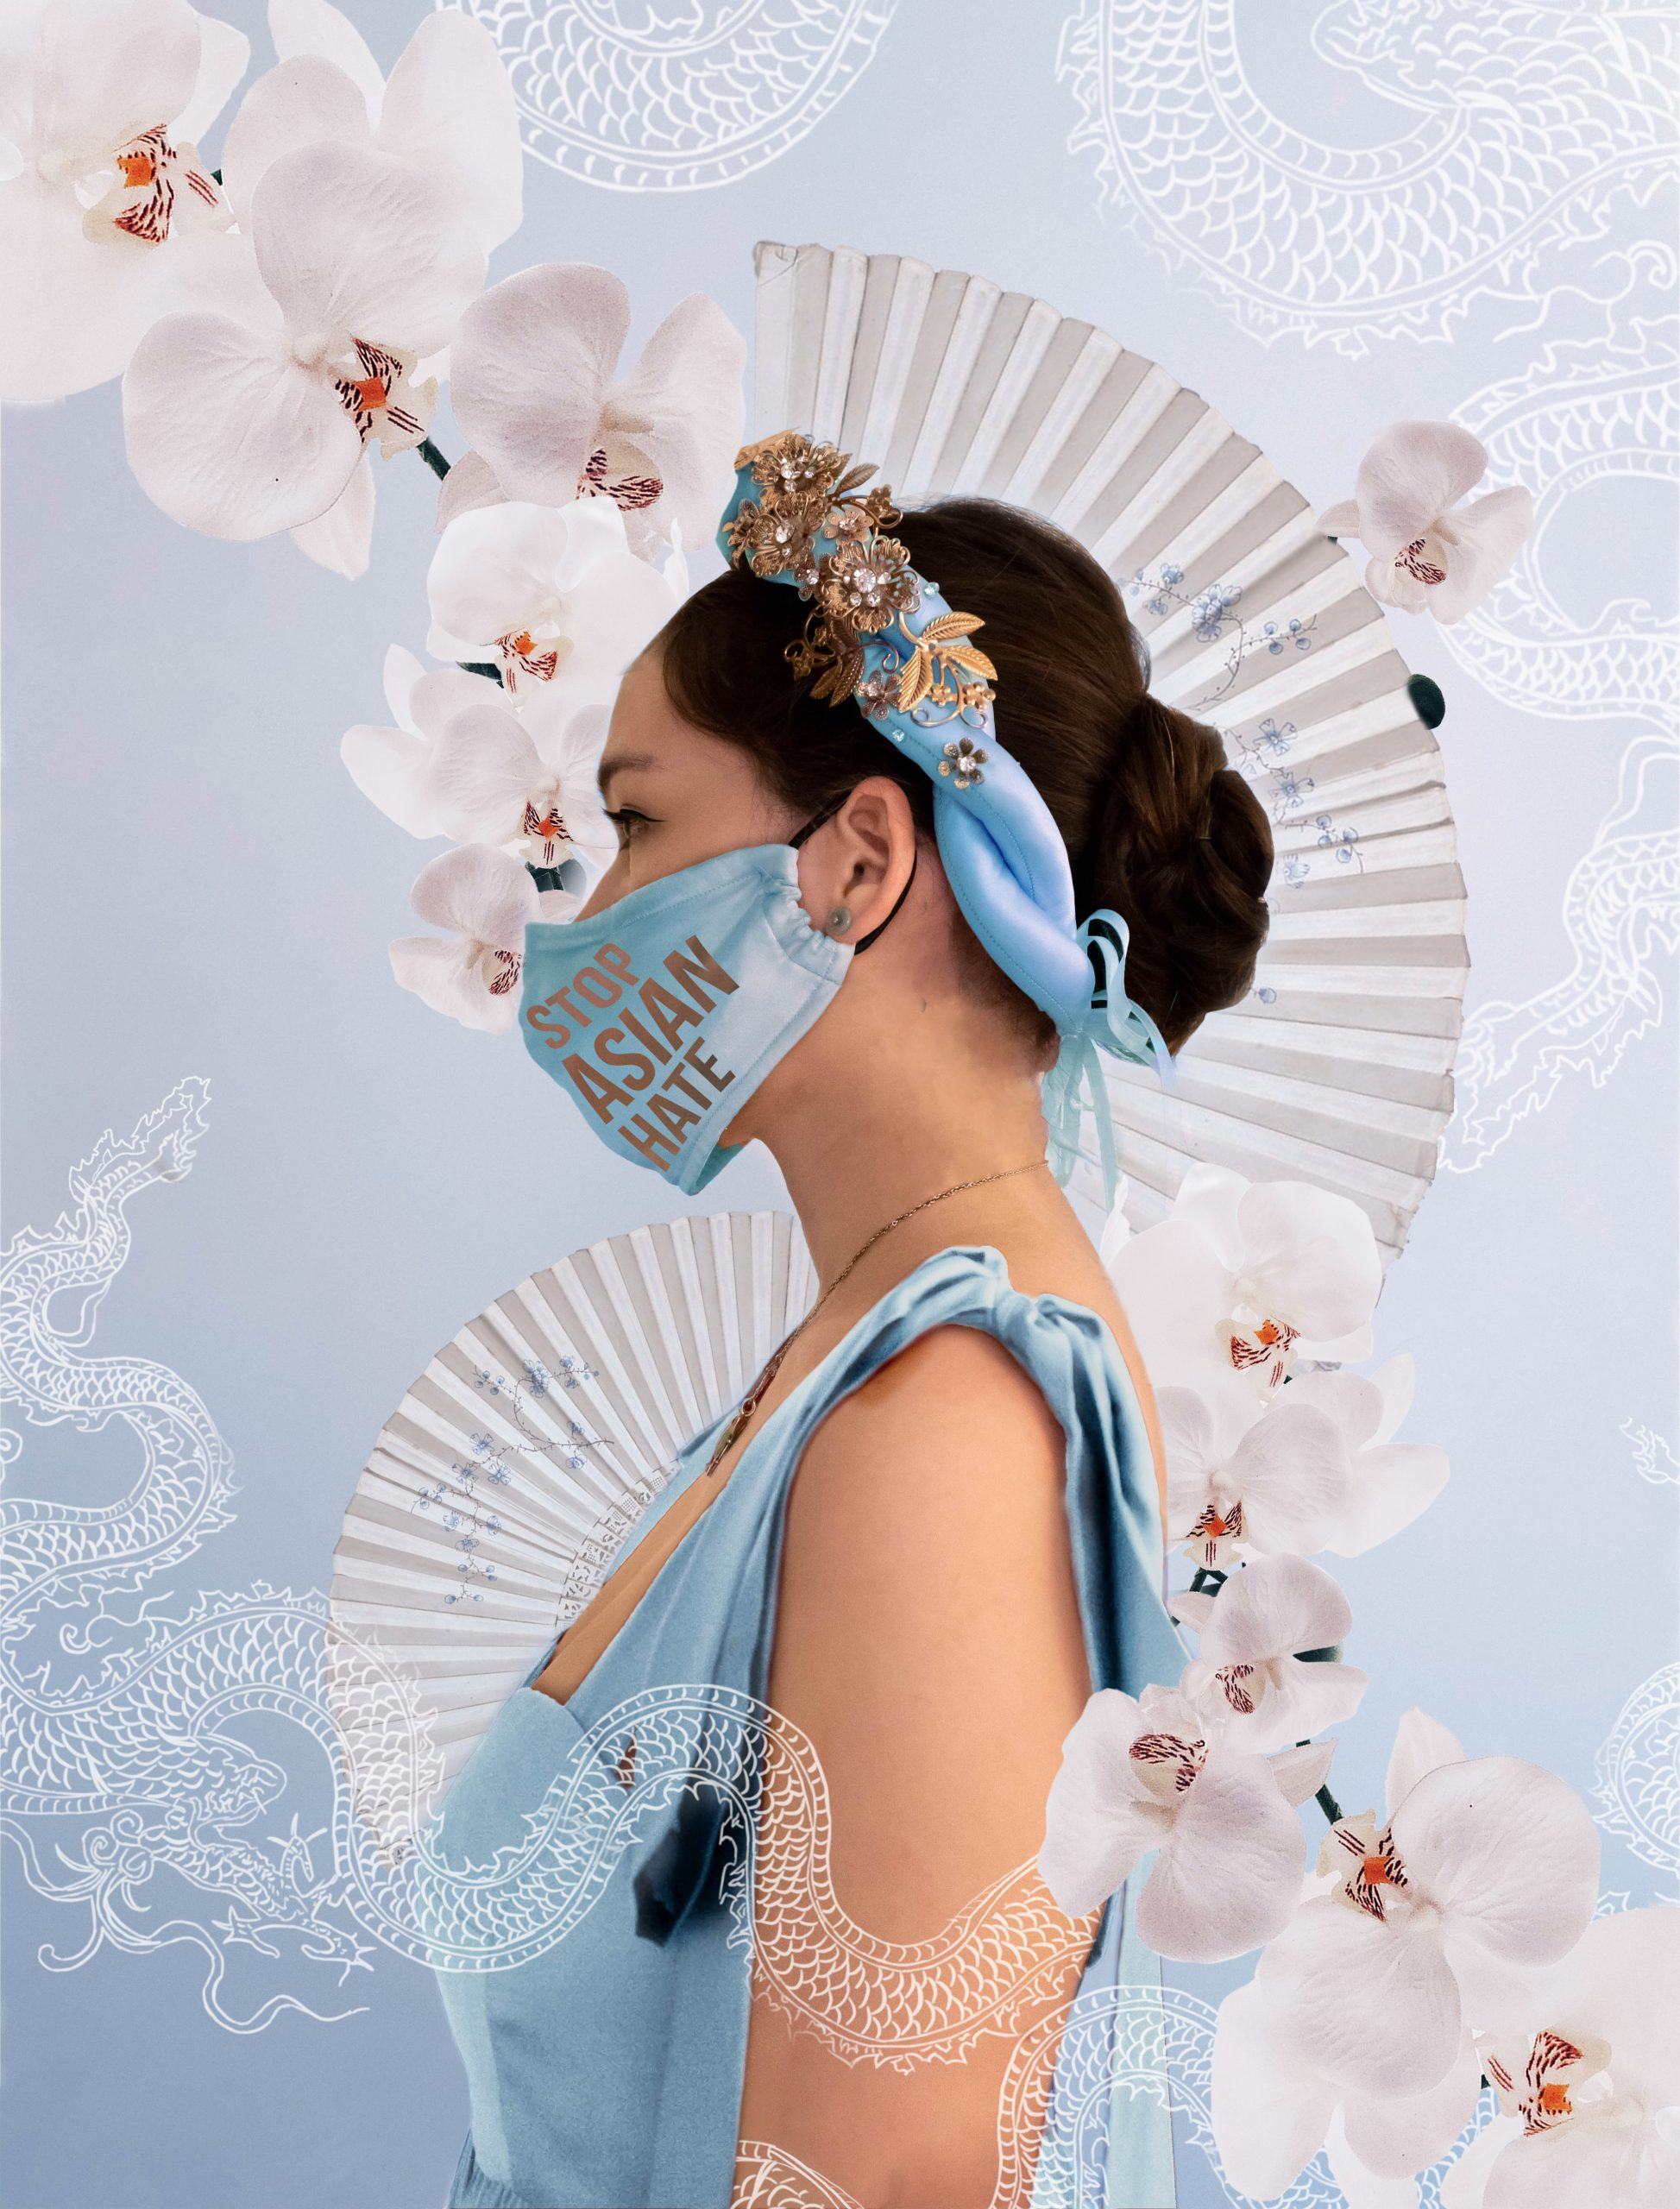 stop asian hate vietnamese woman perrin and co anne dress khan dong ao dai headband white orchid pleated fan hate is a virus white dragon illustrtion blue background face mask anti-asian hate racism awareness